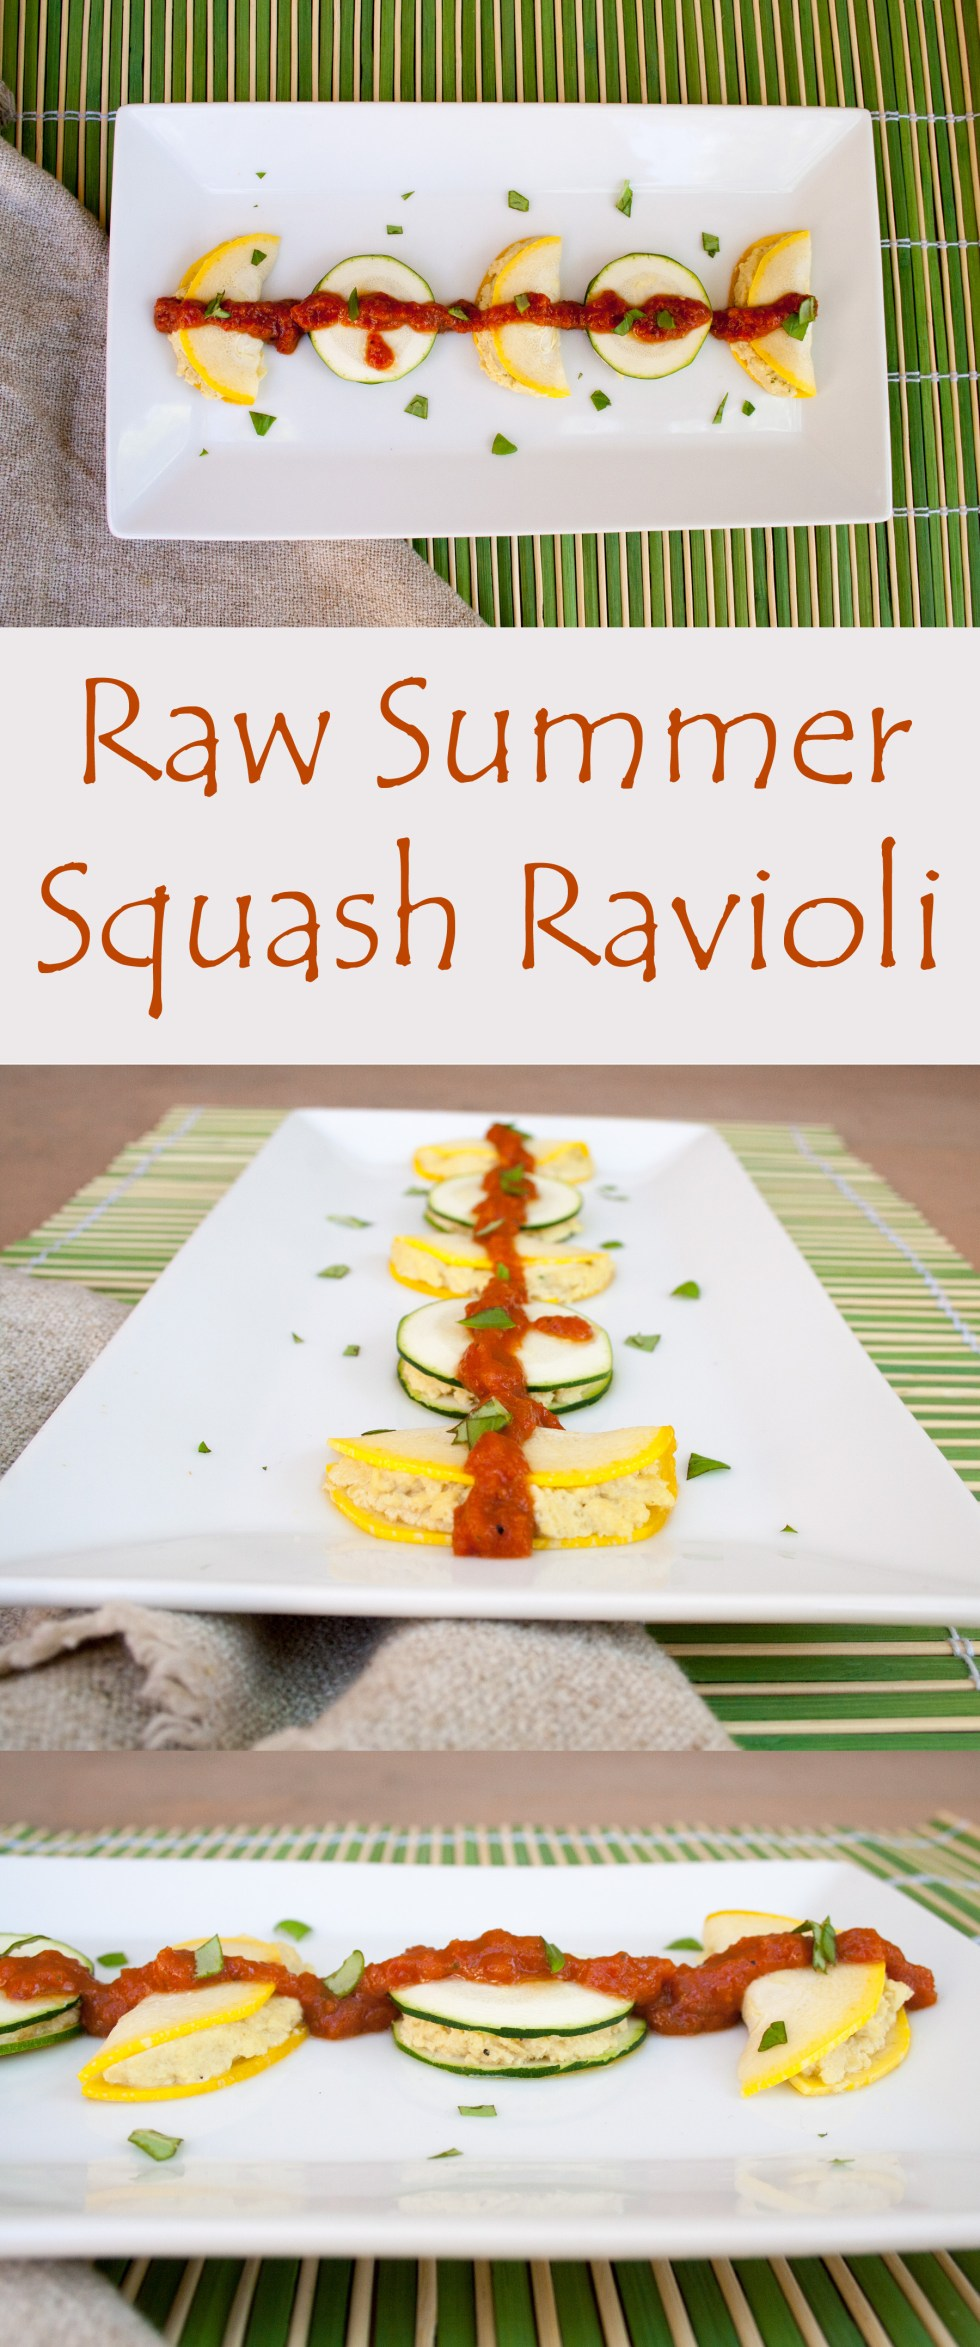 Raw Summer Squash Ravioli - This vegan ravioli is a perfect snack or light meal for Summer. It also makes a nice presentation as an appetizer for a party.